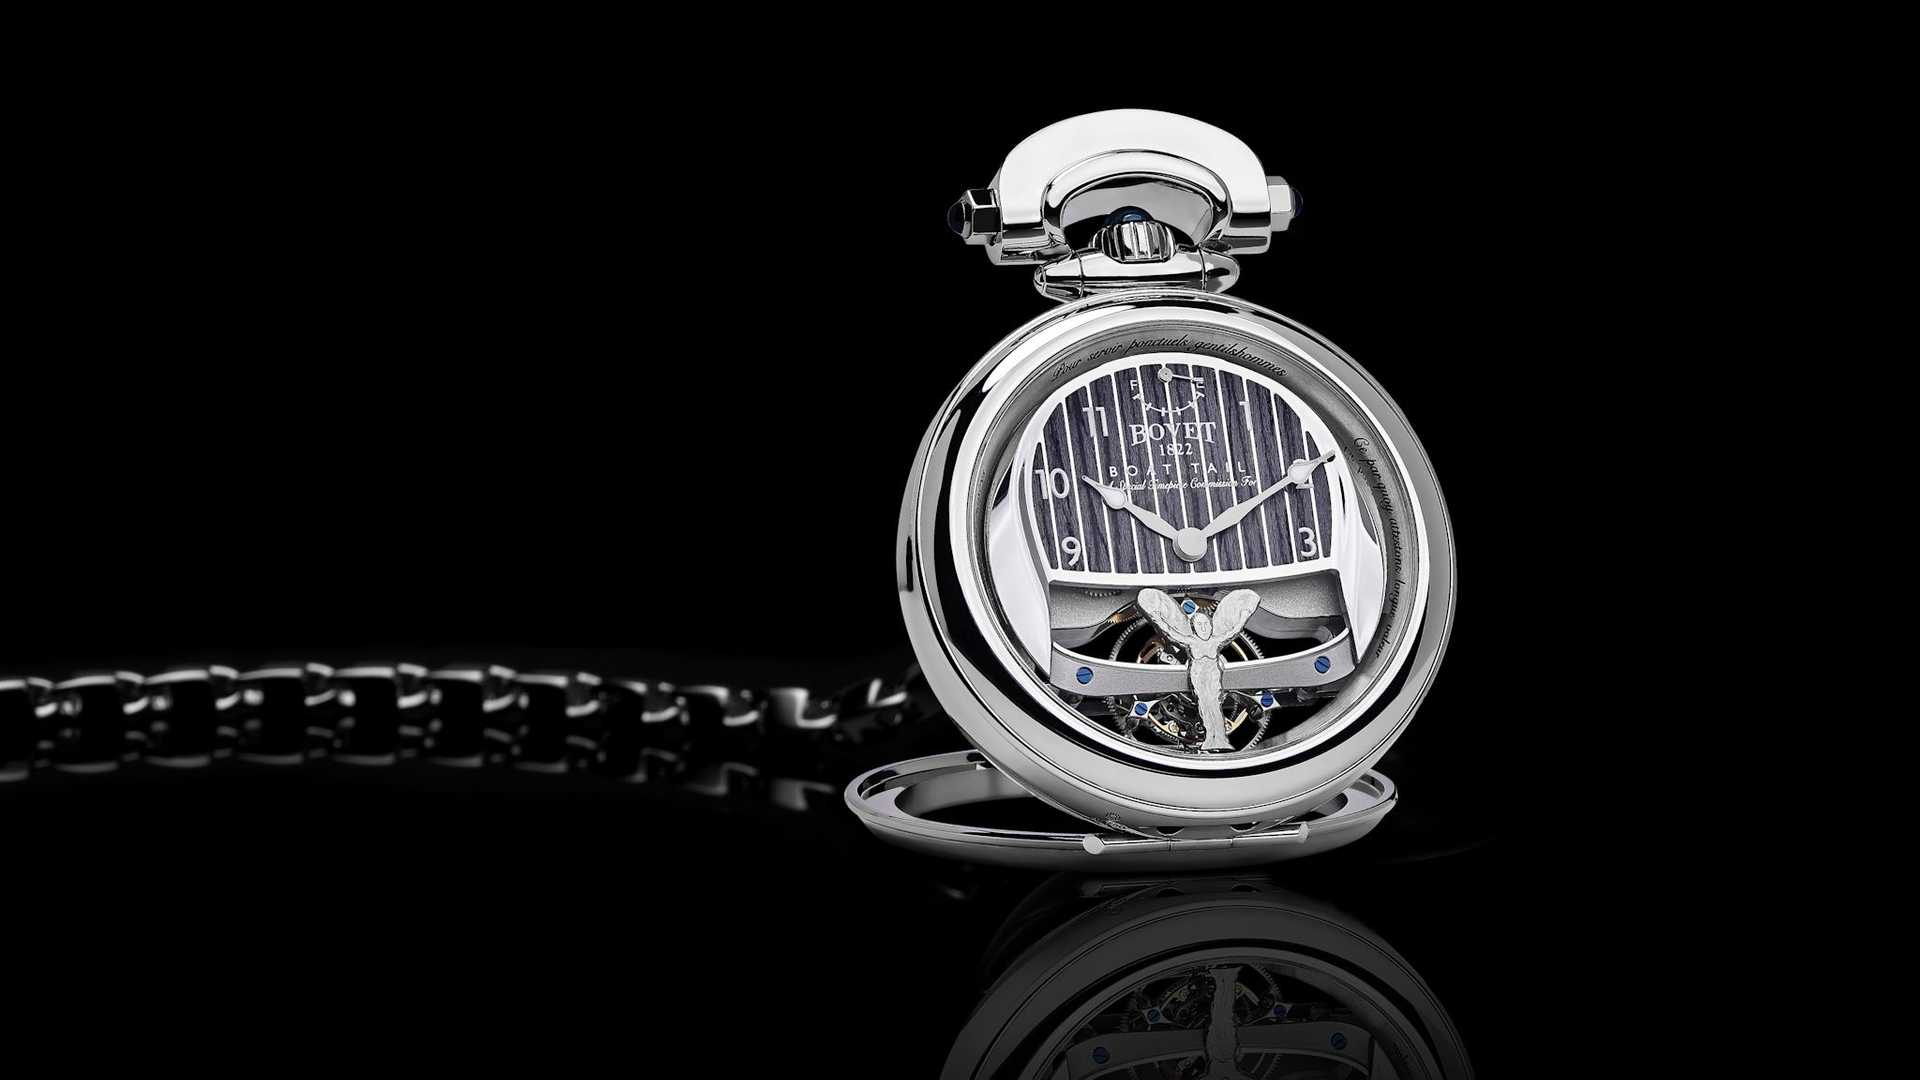 Rolls-Royce has also been into designing car-themed wristwatches lately: the unique accessory pictured here will be worn by the owner(s) of the opulent Boat Tail convertible.